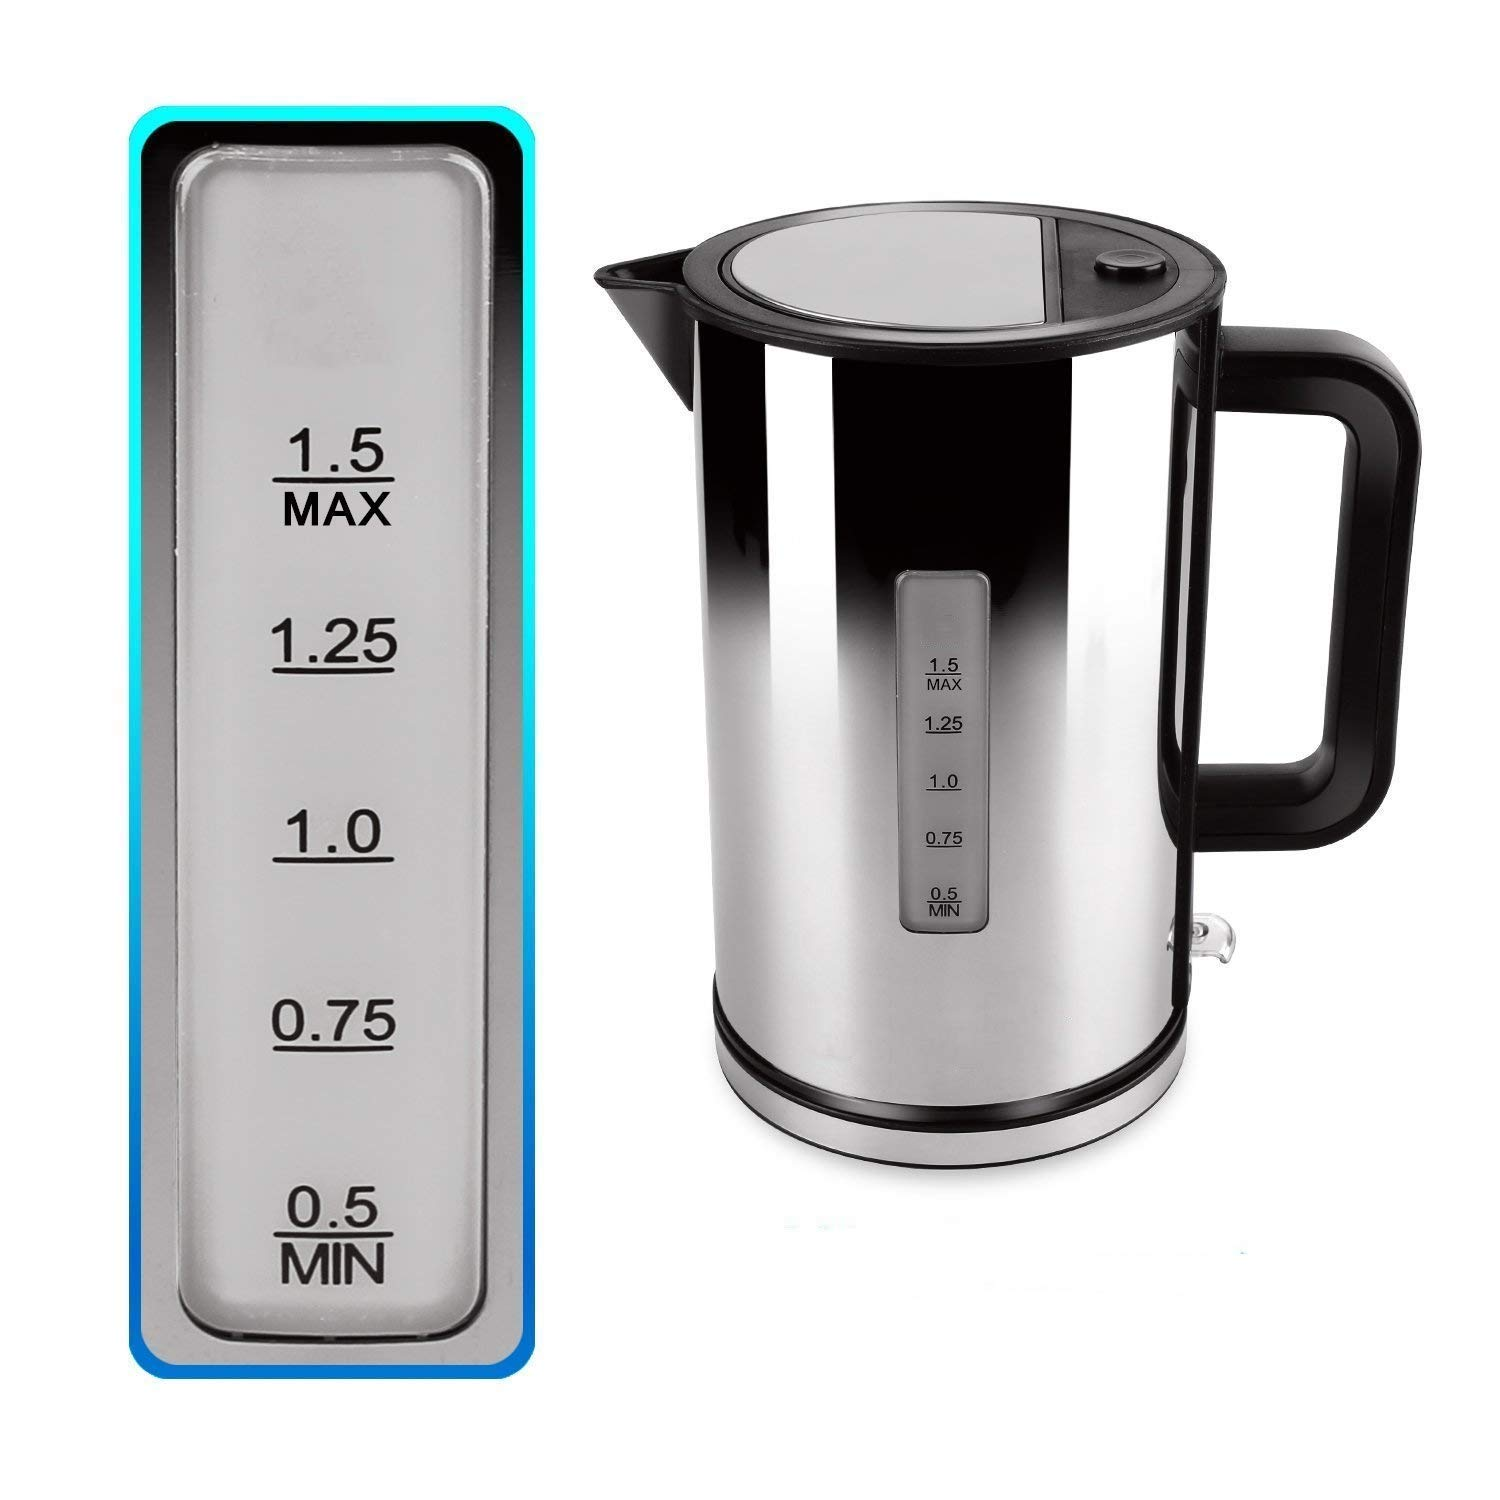 French Press Coffee Tea Maker Coffee Press Pot 304 Grade Stainless Steel Heat-Resistant Durable Long-Lasting Better Filtering (1 liter, 34 oz) 1000ml